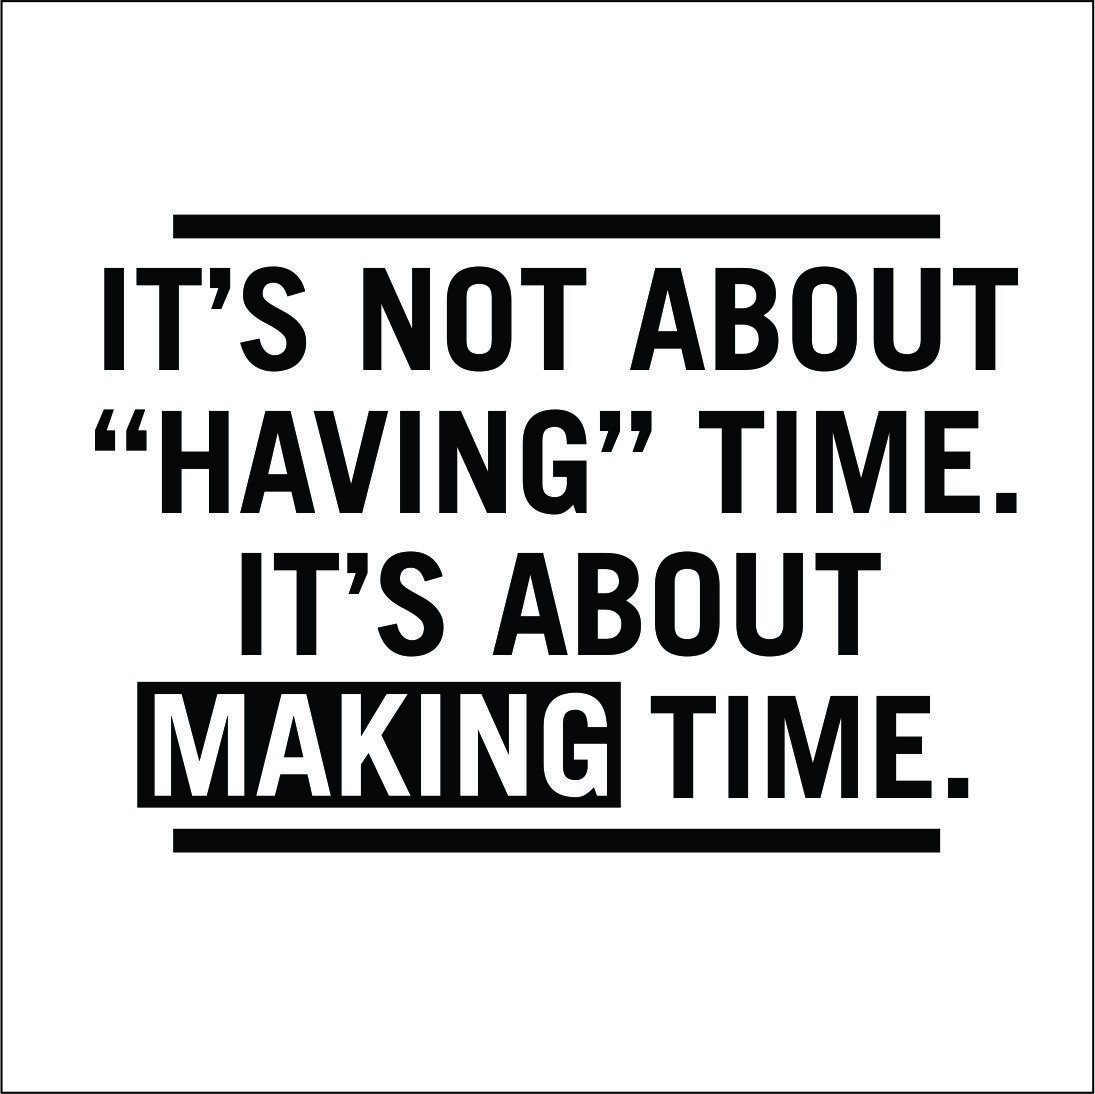 its_not_about_having_time_it_s_about_making_time.jpg